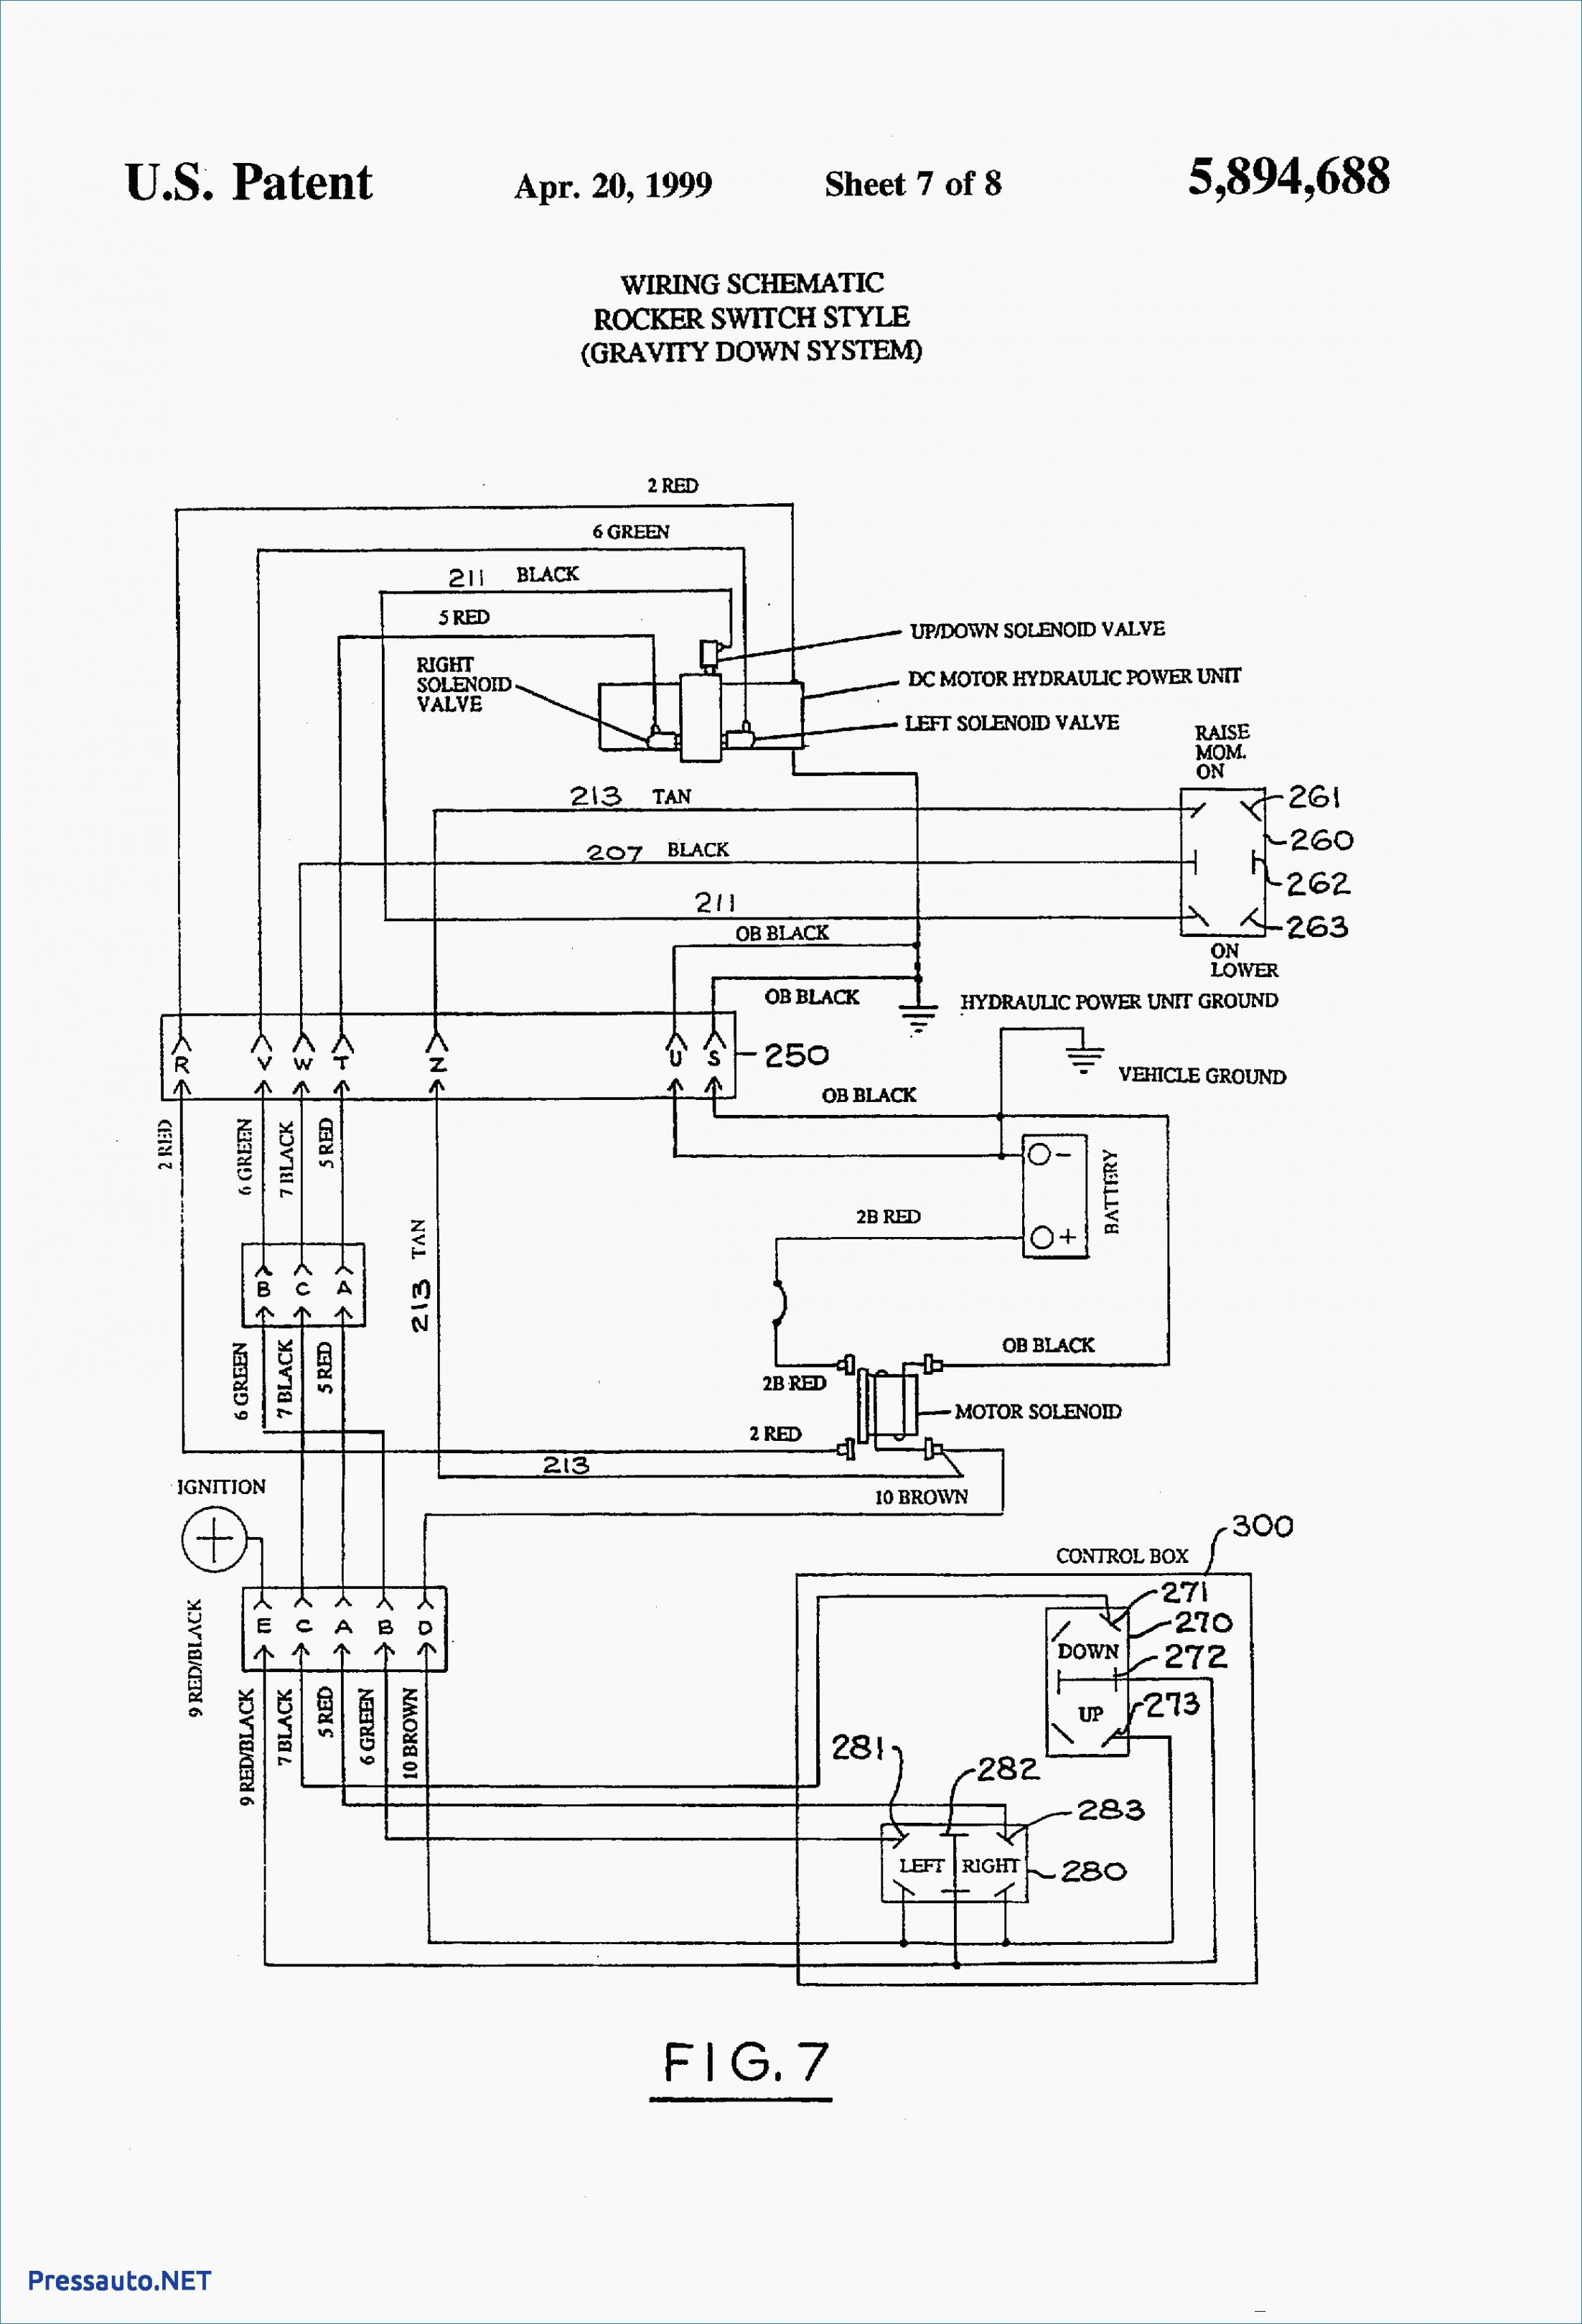 Western Snow Plow Relay Wiring Diagram - Wiring Diagrams Hubs - Western Plow Controller Wiring Diagram